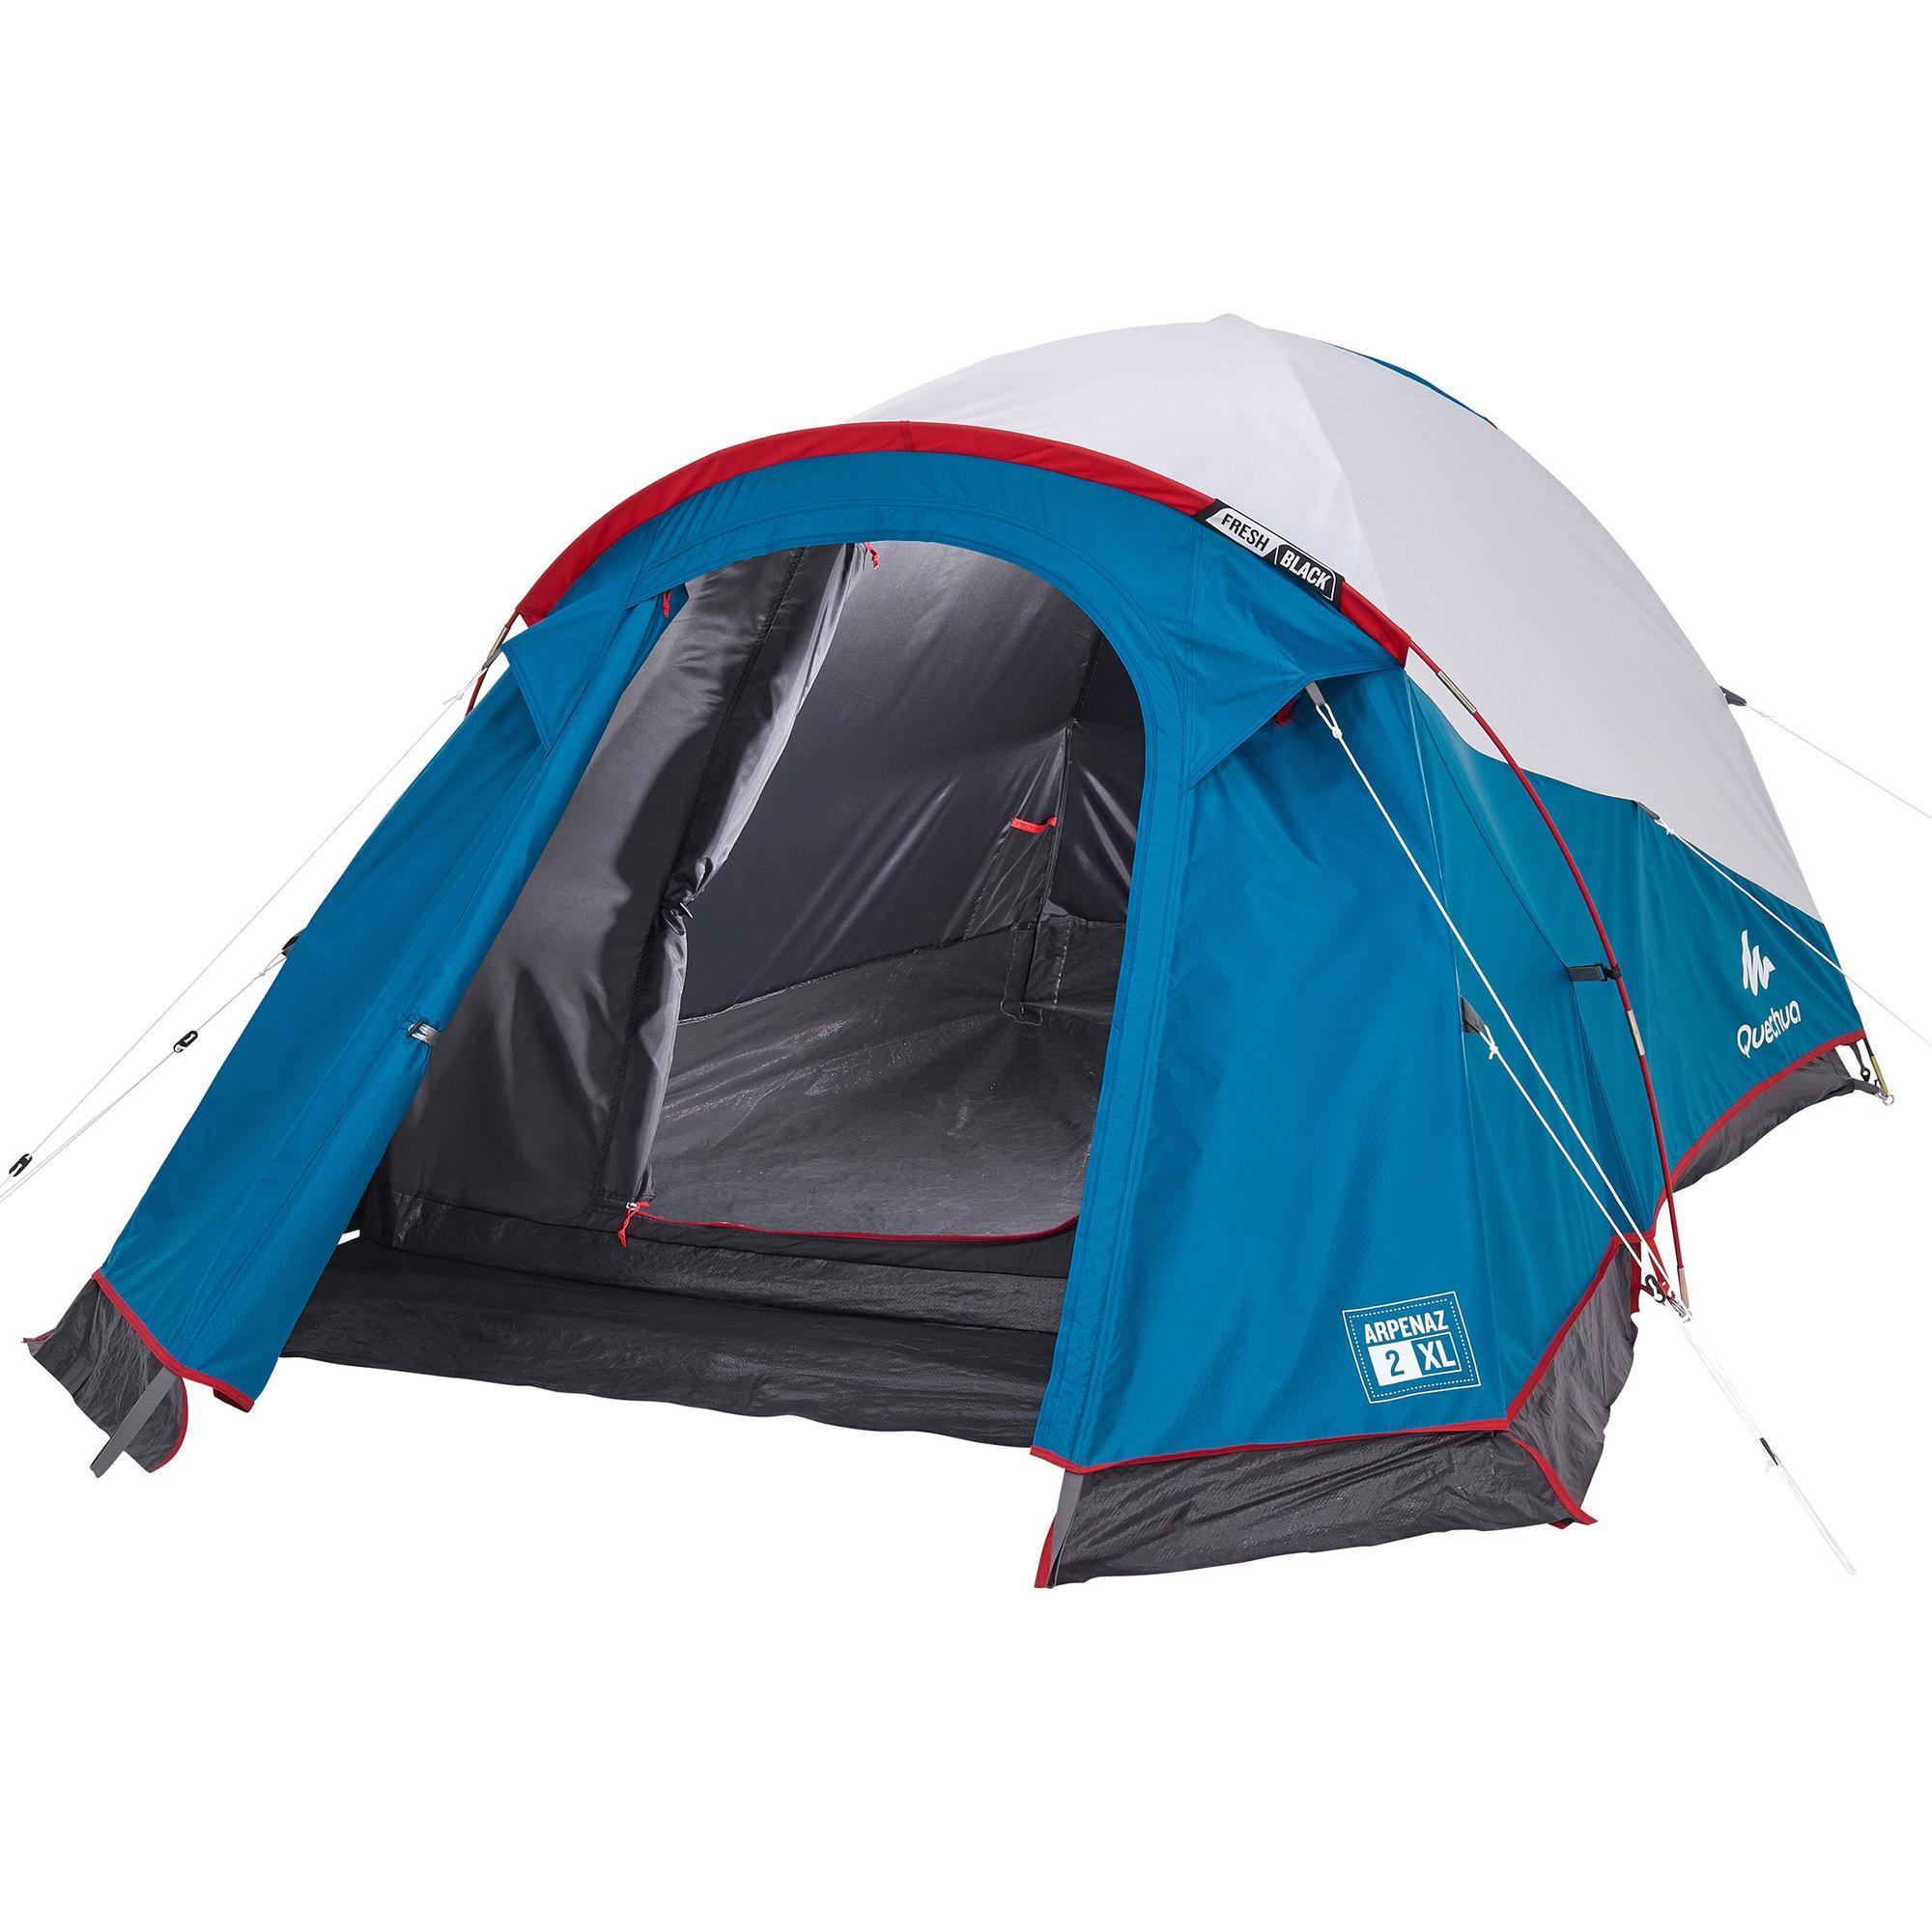 Quechua Tent | 2 Persoons | Blauw/Wit | Arpenaz XL Fresh & Black